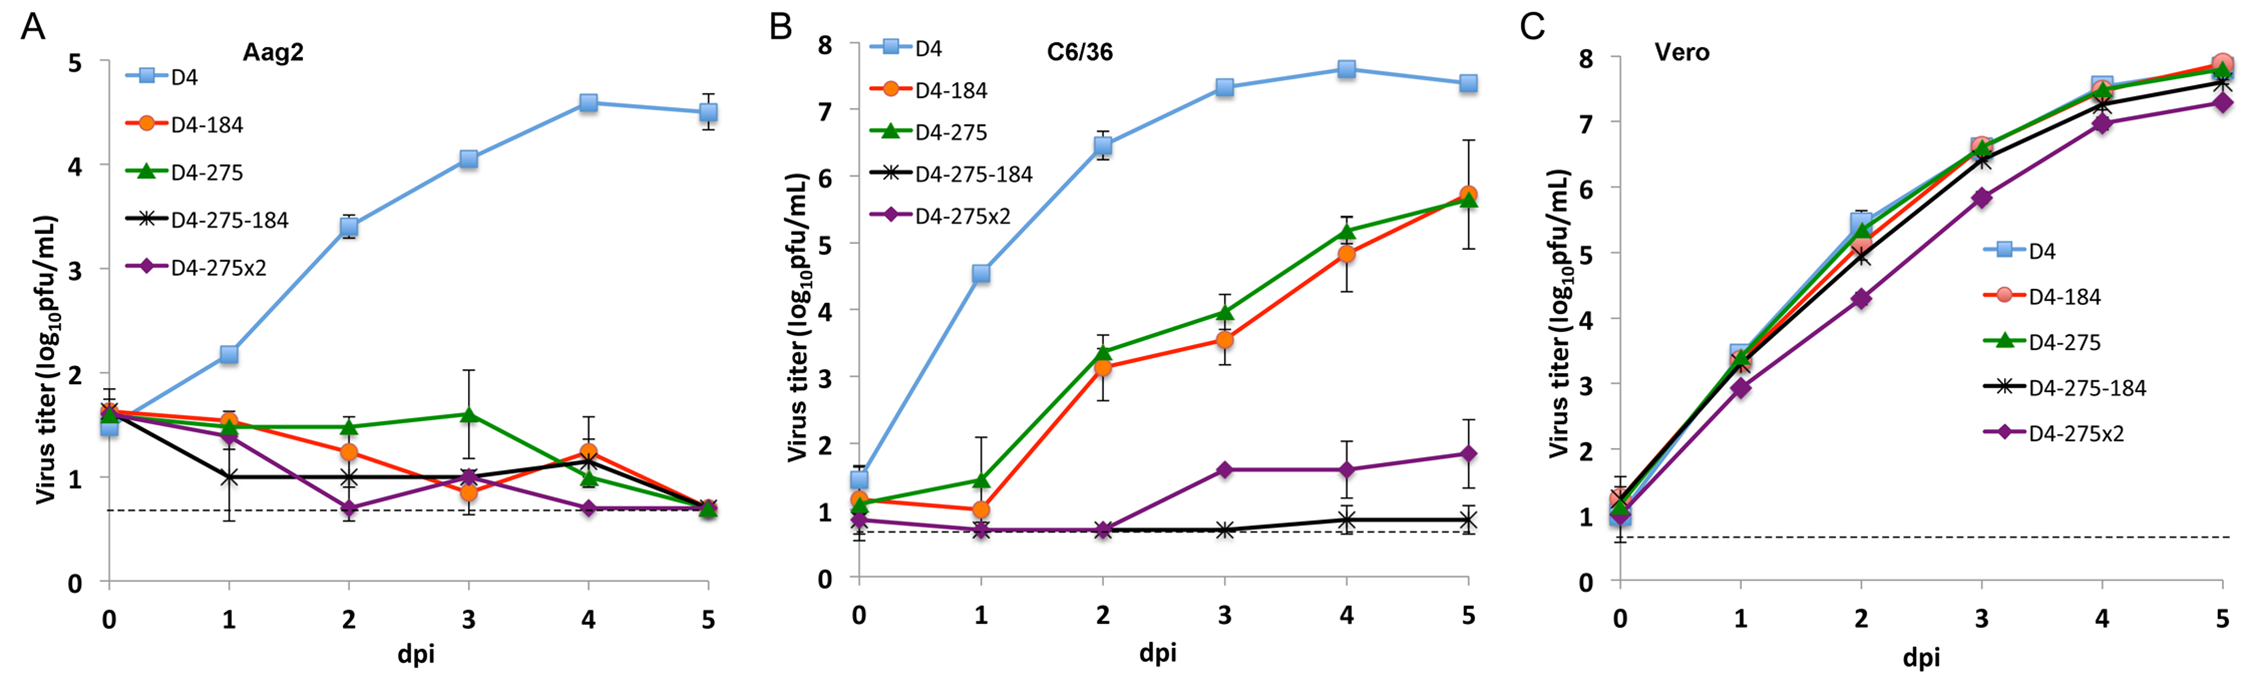 Effect of combined mir-184 and mir-275 co-targeting of DEN4 genome in the 3'NCR on virus replication in mosquito and Vero cells.